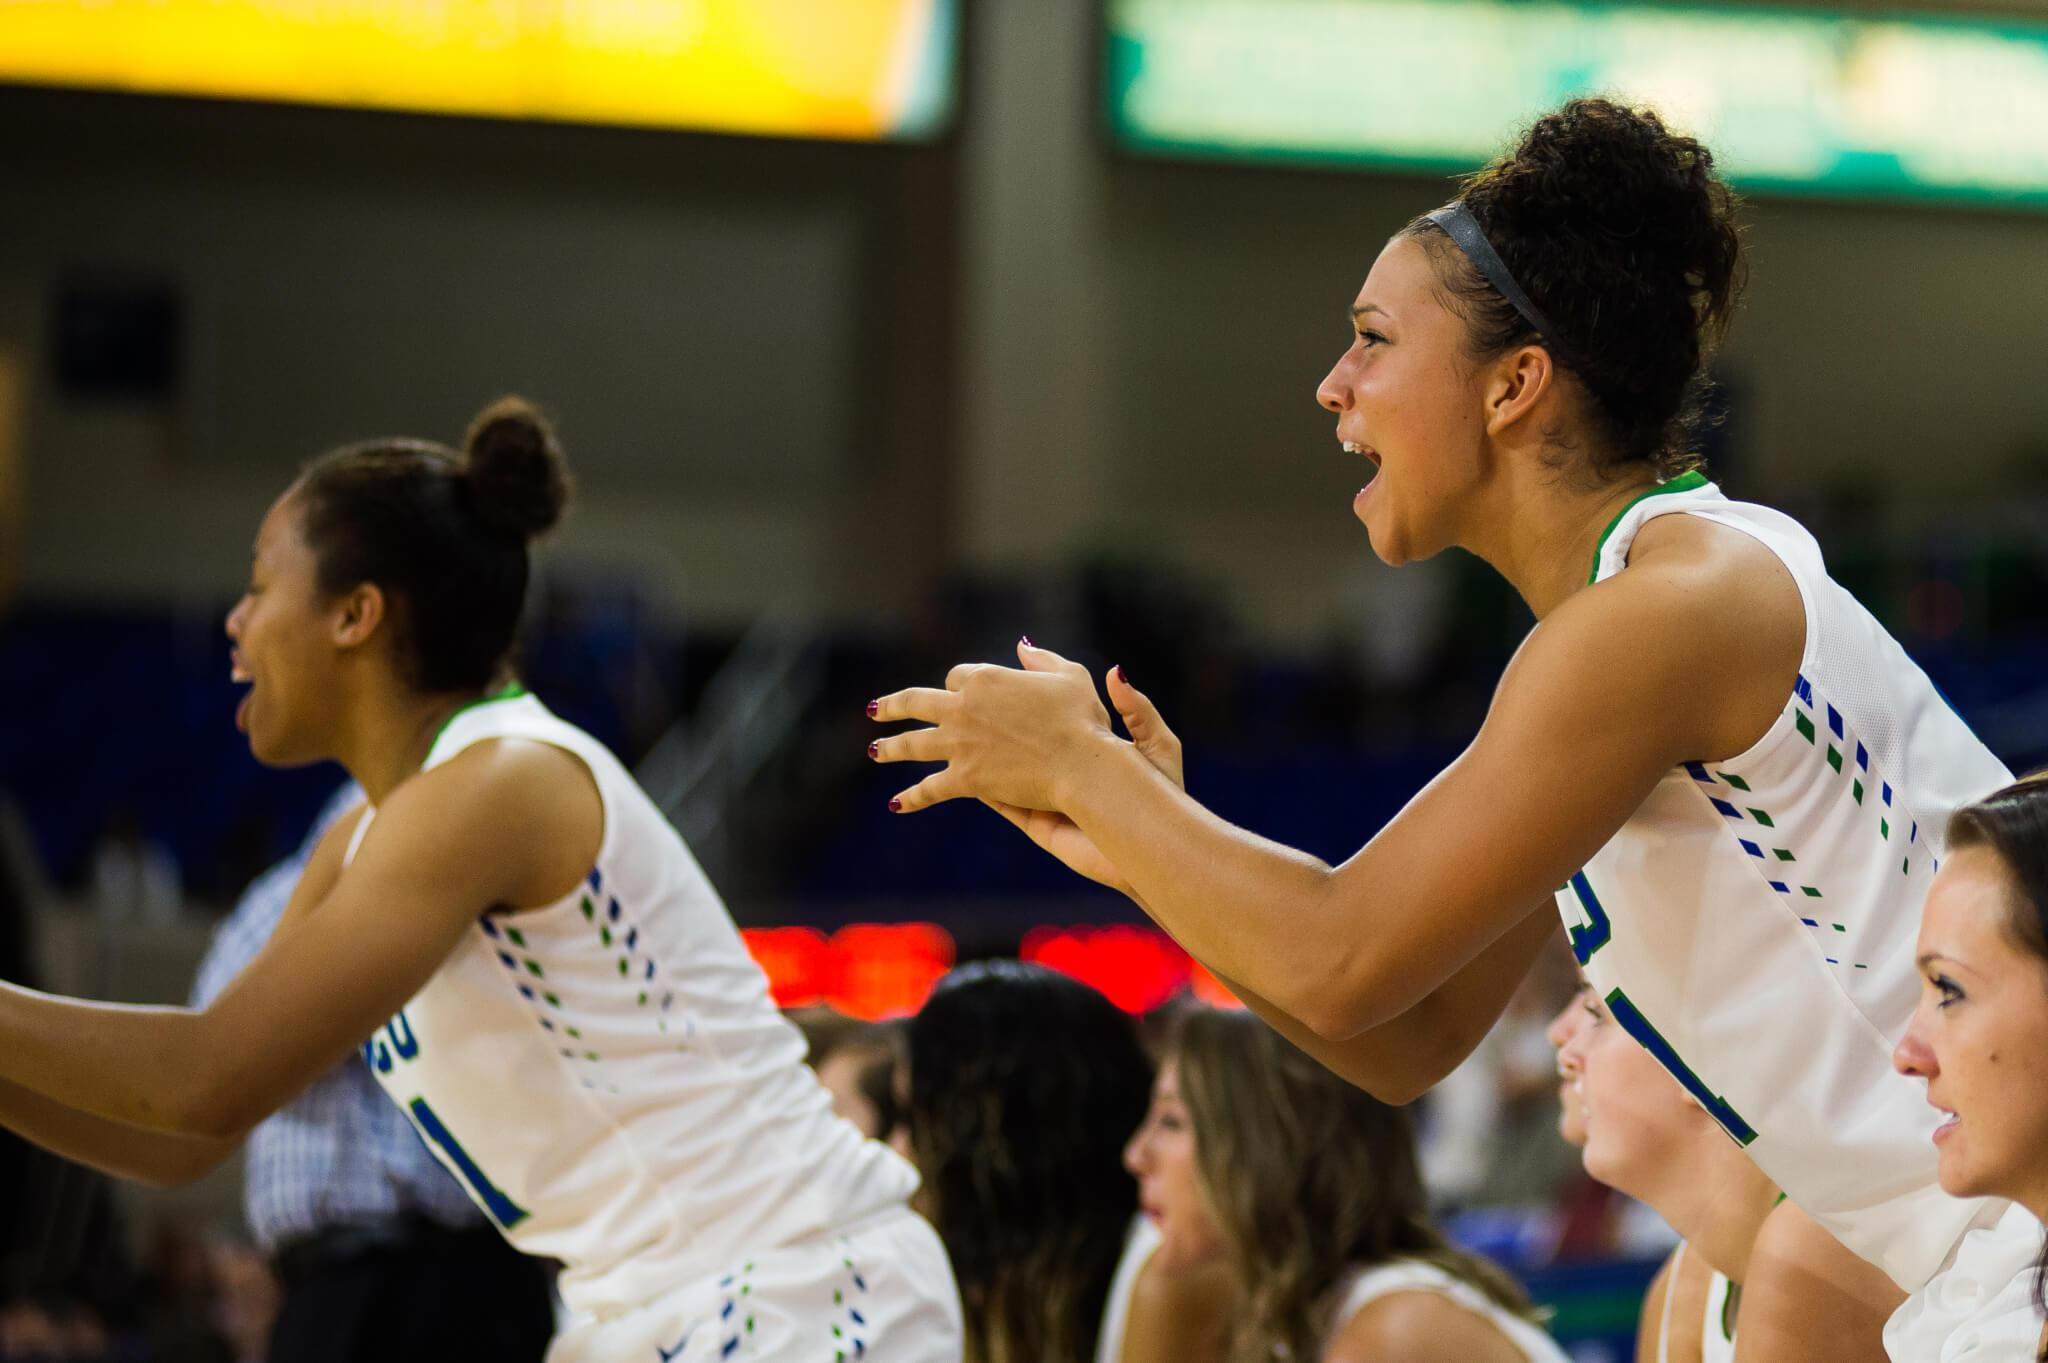 FGCU women's basketball team looks for its first win of 2017